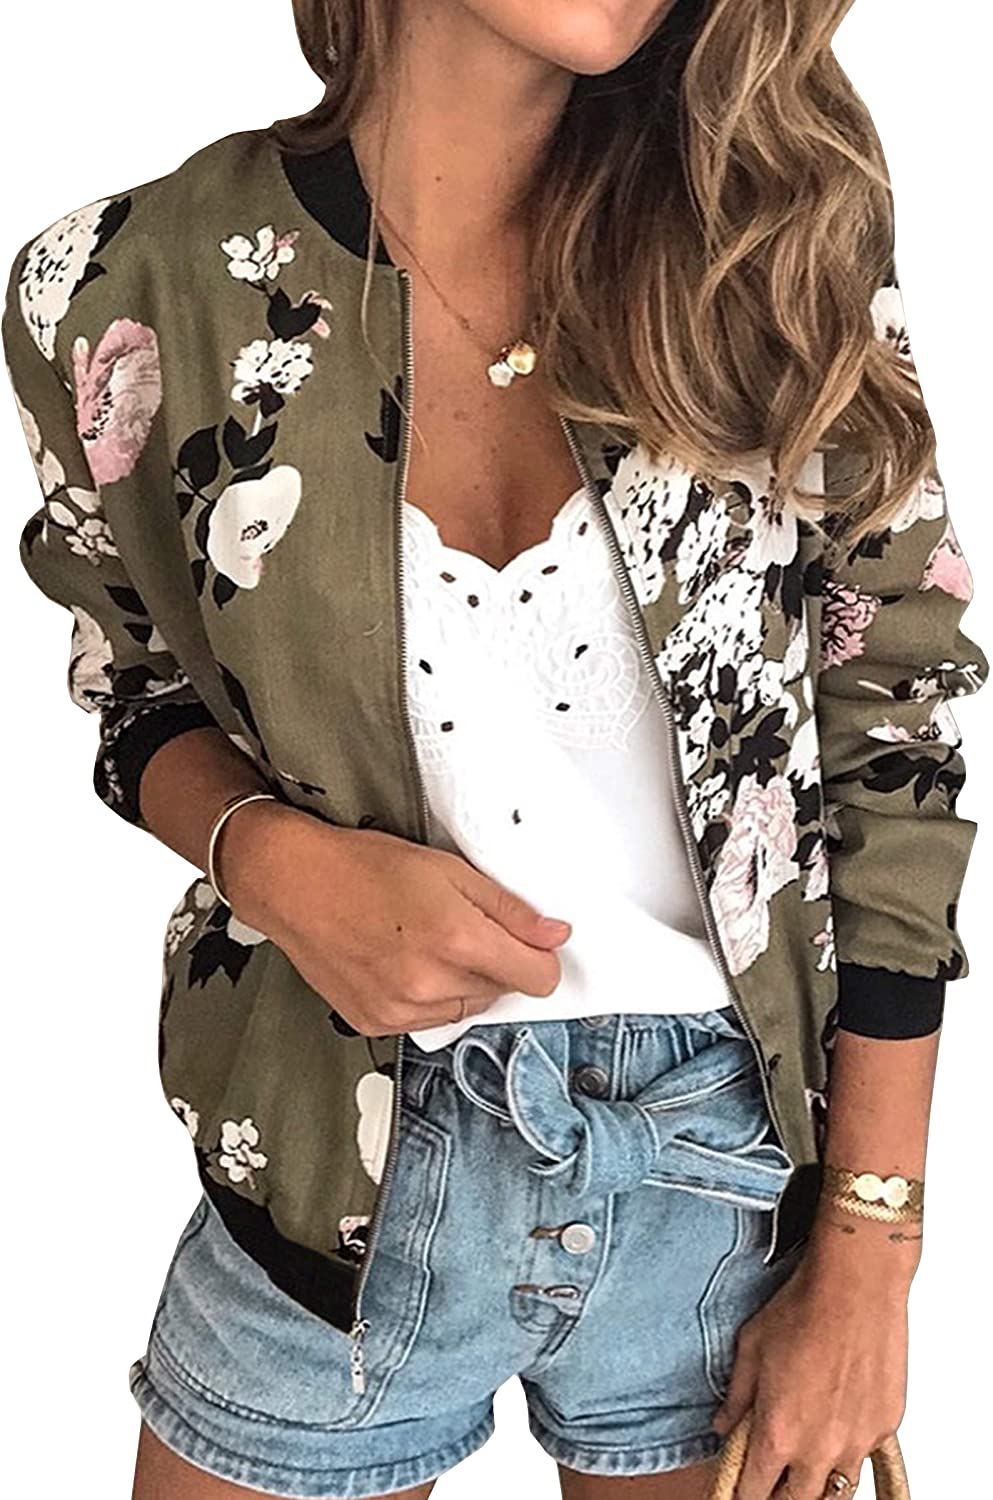 ECOWISH Womens Jackets Lightweight Zip Up Casual Inspired Bomber Jacket Leopard Coat Stand Collar Short Outwear Tops